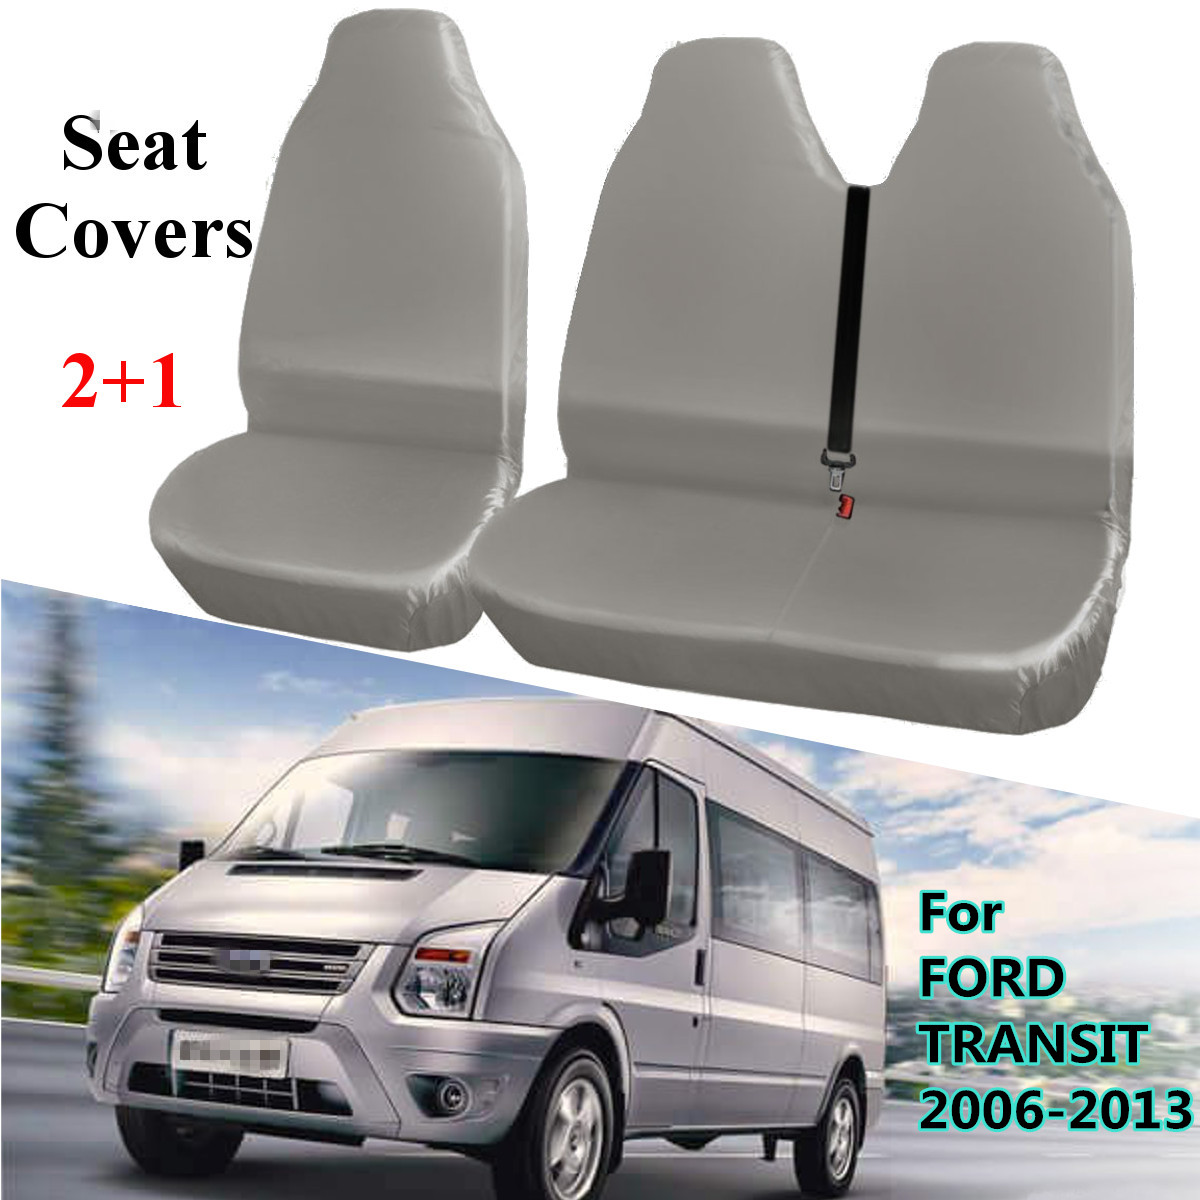 2+1 Gray Waterproof Van Seat Covers Protector for FORD TRANSIT 2006-2013 ford transit 2006 2 3 145 2 2 85 110 130 2 4 100 115 140